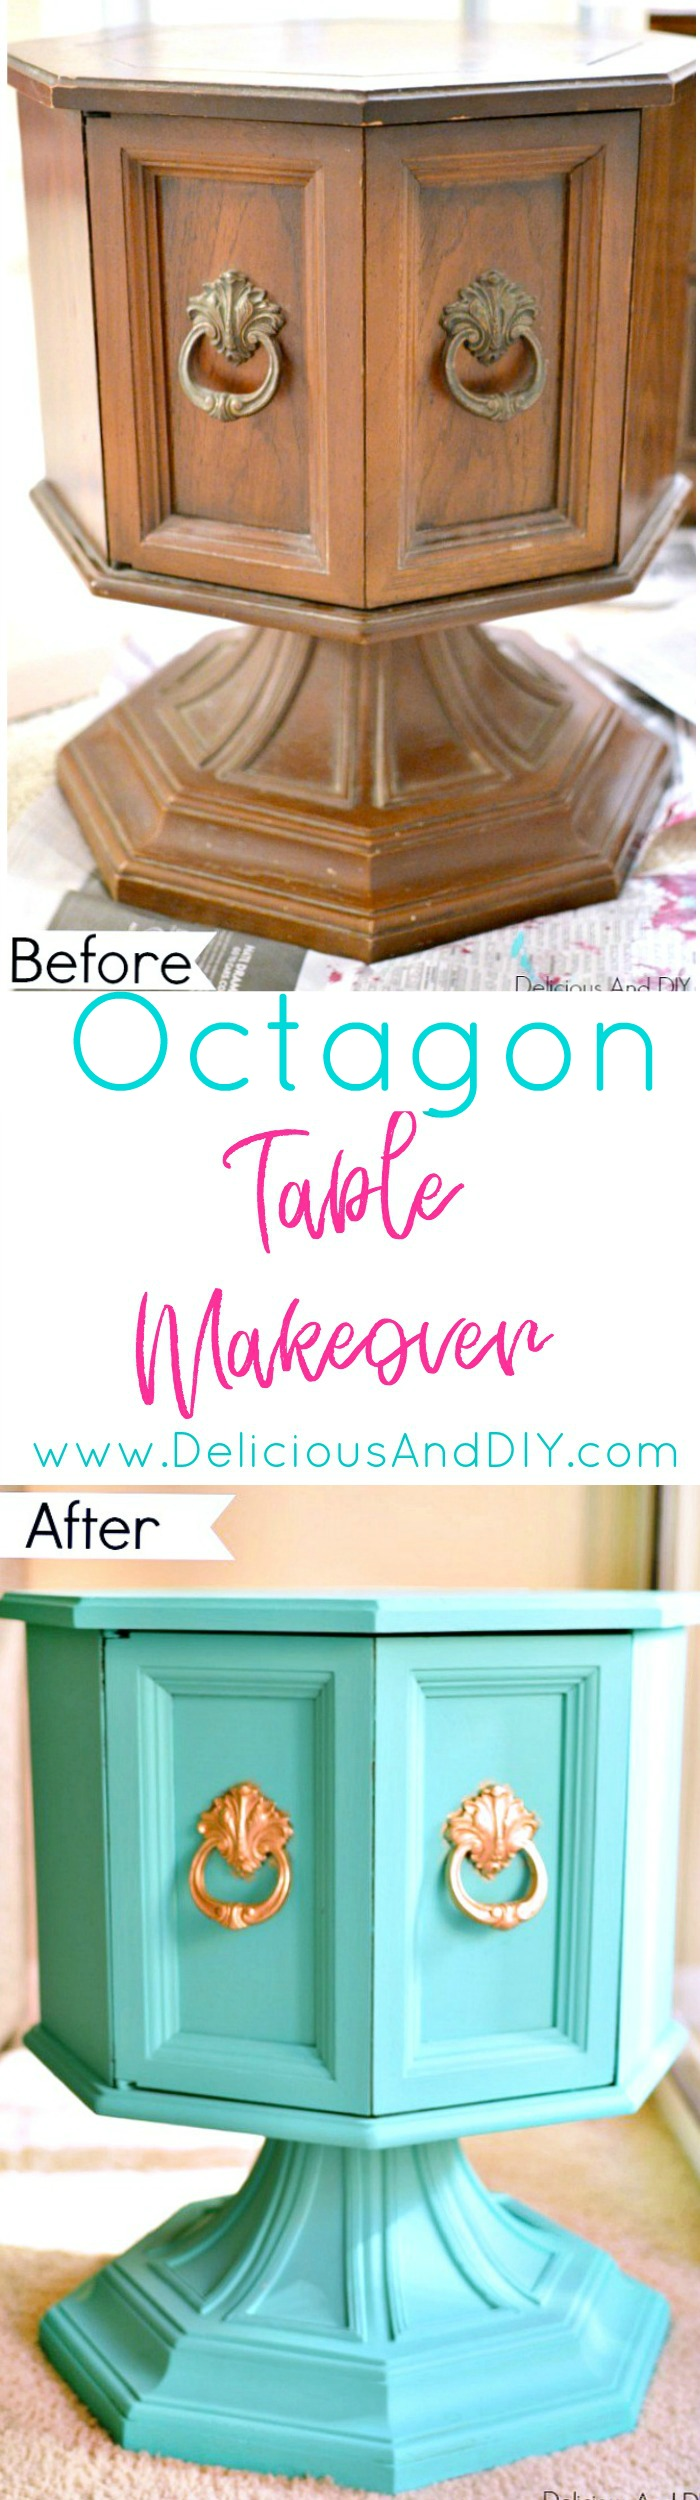 Transform a dated octagon table into this stunning piece of furniture with a pop of color| hexagon table projects| Painted Furniture| DIY Projects| Turquoise Furniture| Before and After| Home Decor| DIY Crafts